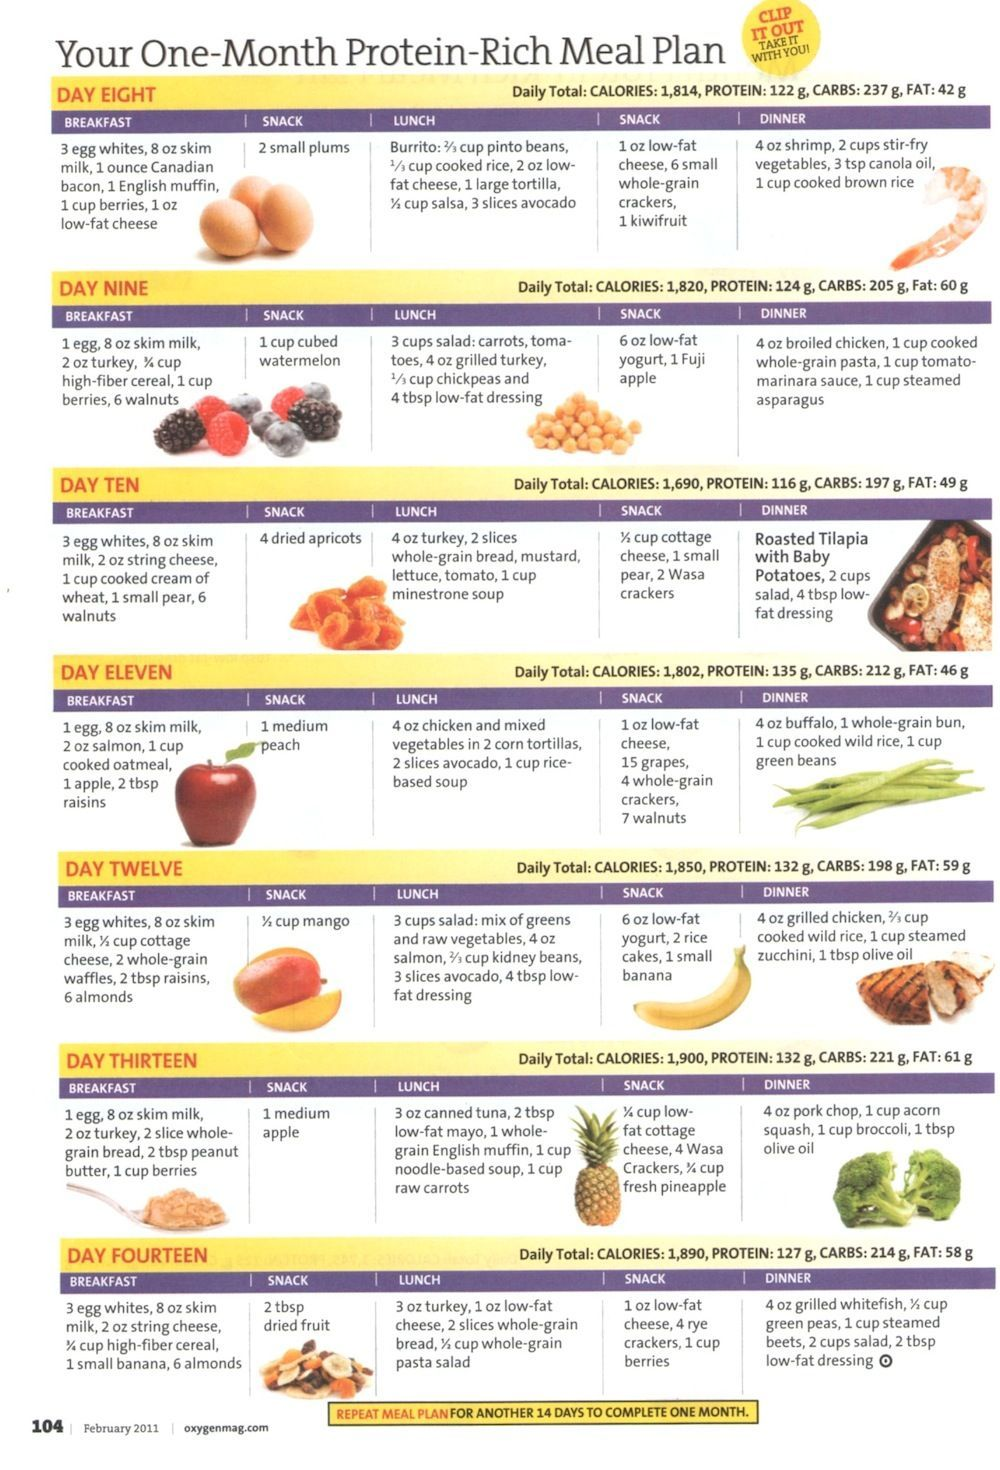 One-Month Protein-Rich Meal Plan - Week 2 | Fitness treats